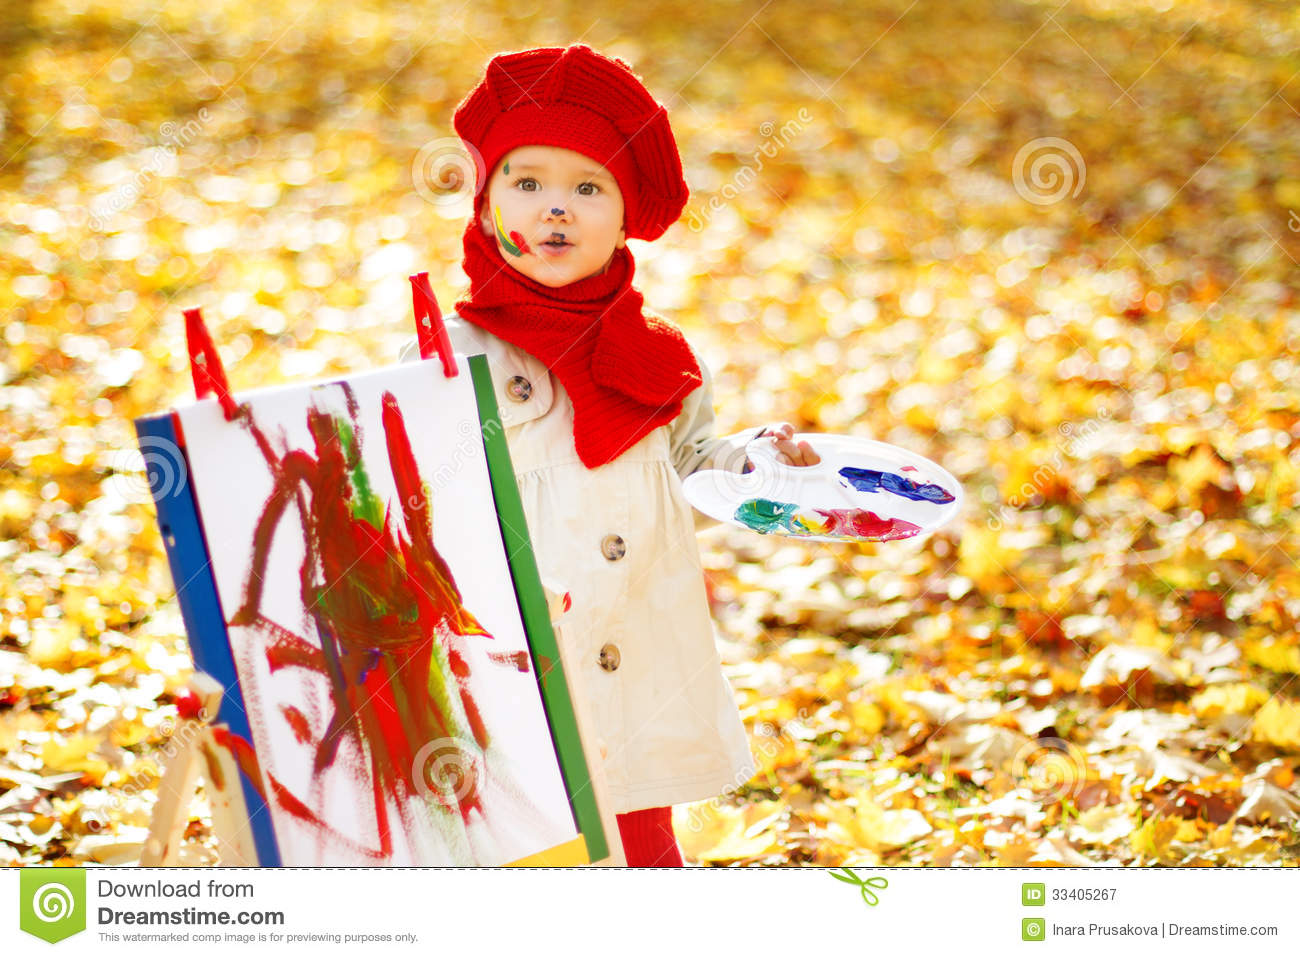 Child Drawing On Easel In Autumn Park Creative Kids